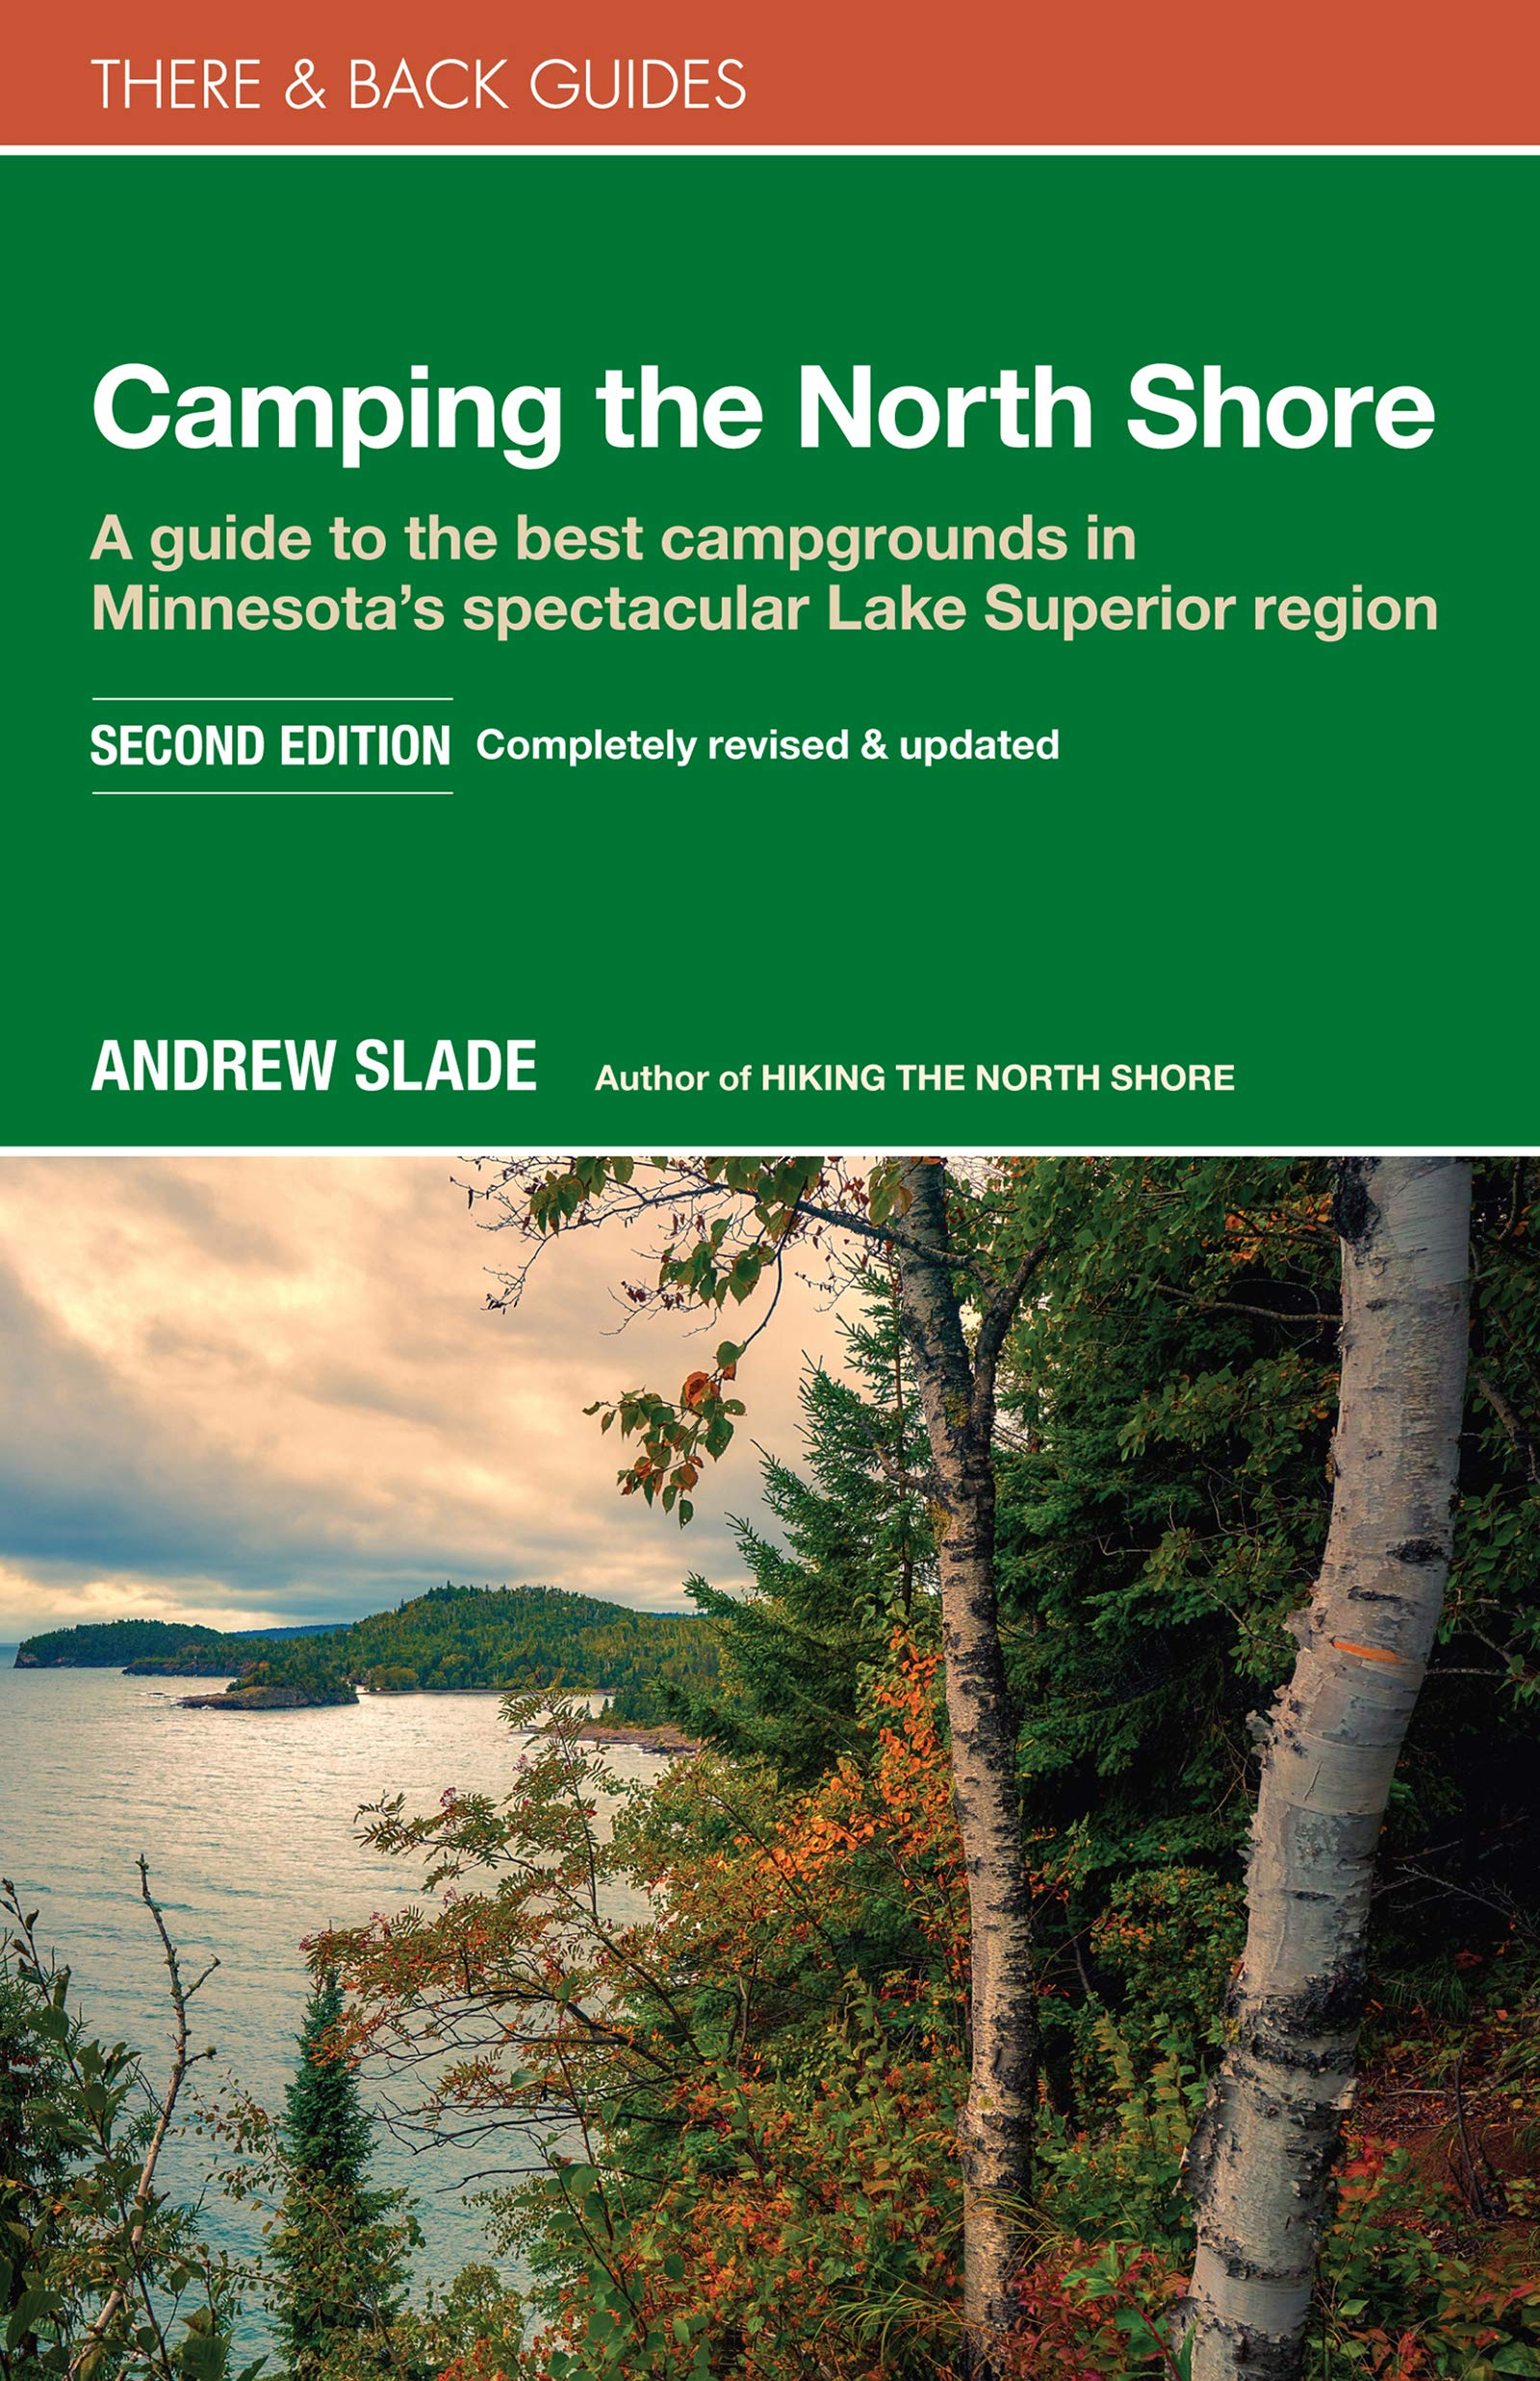 Image OfCamping The North Shore: A Guide To The Best Campgrounds In Minnesota's Spectacular Lake Superior Region (There & Back Gui...